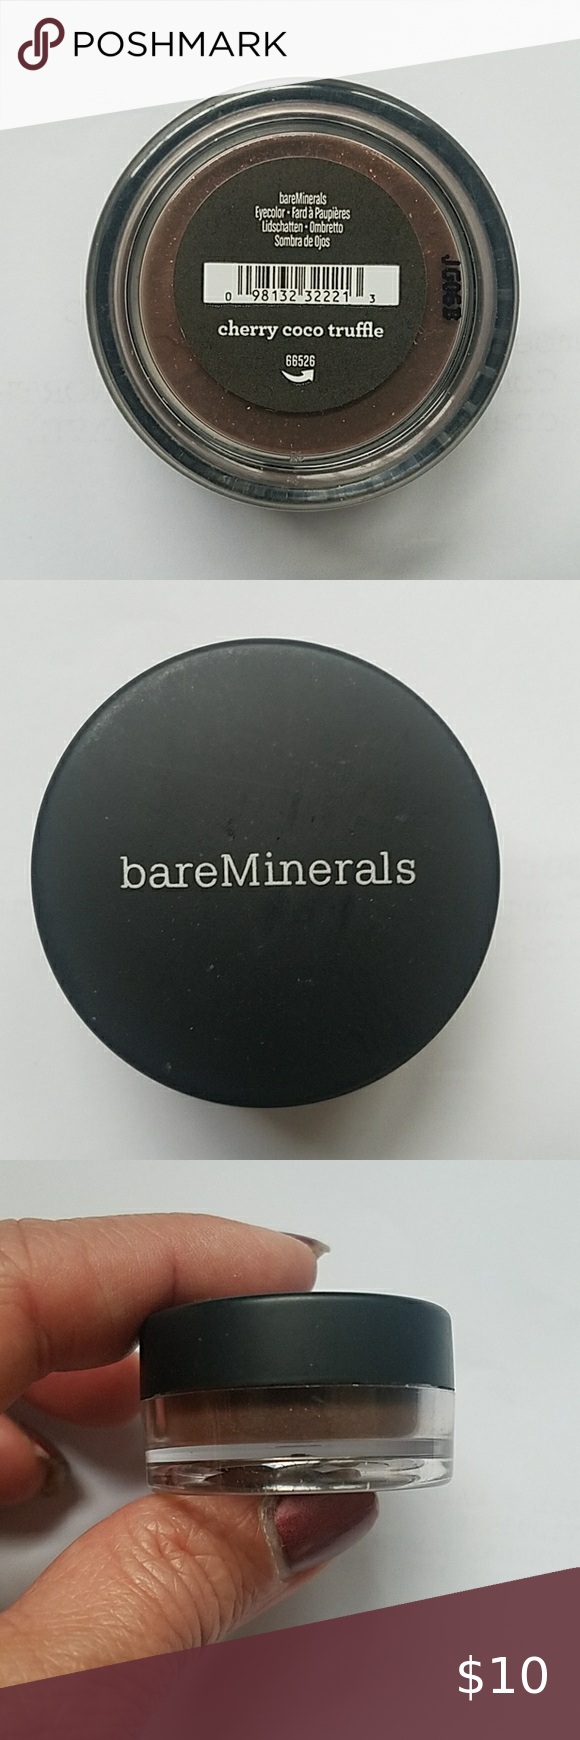 BARE MINERALS Cherry Coco Truffle in 2020 Mineral makeup